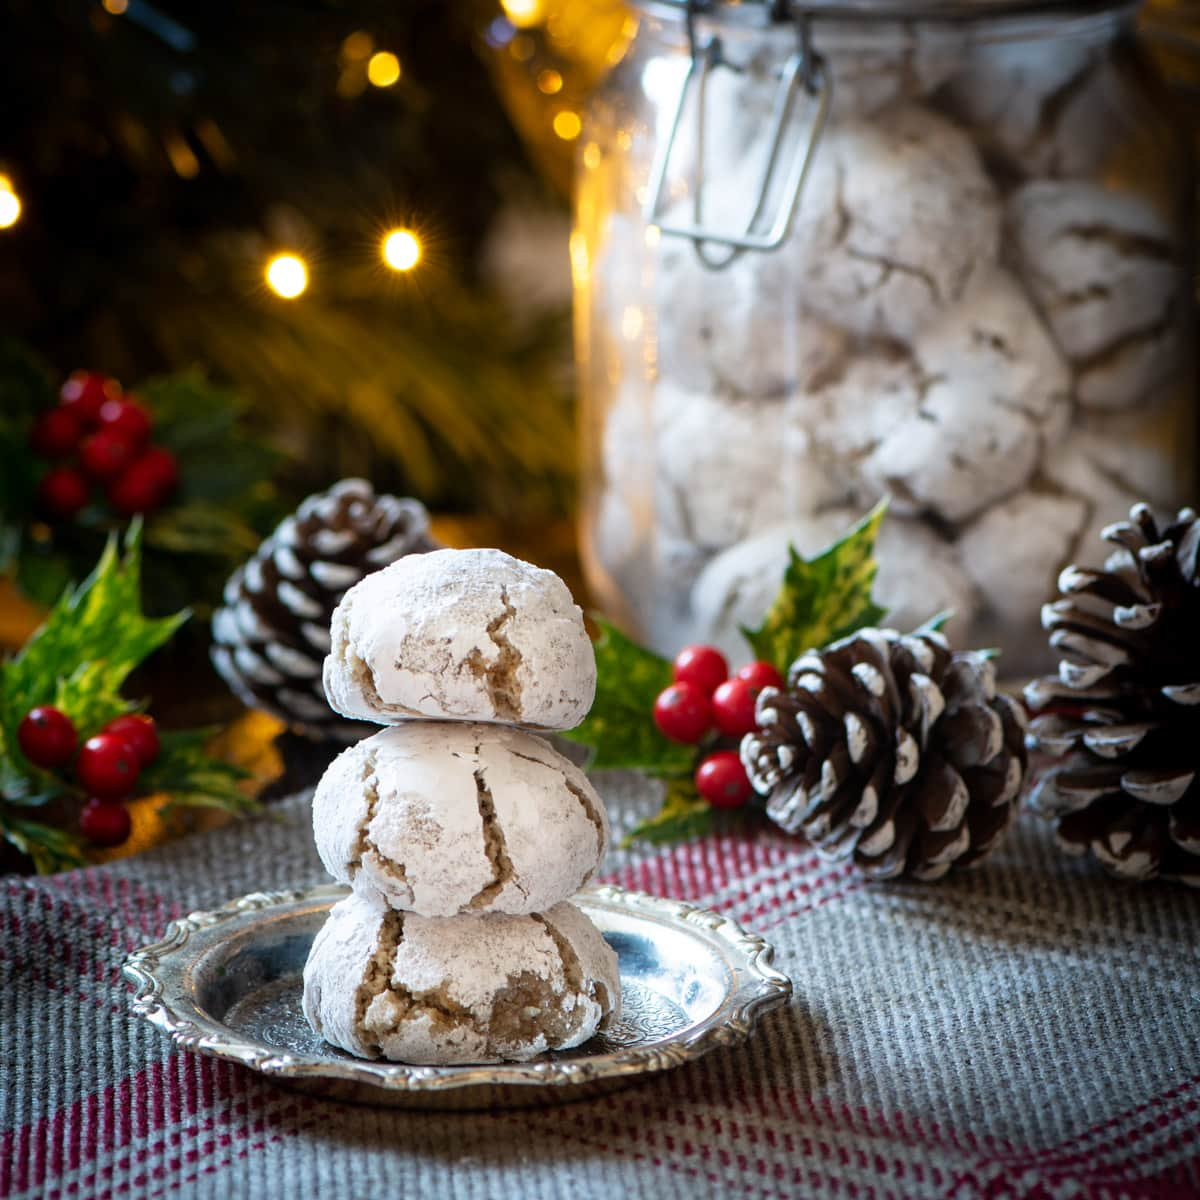 A stack of Christmas amaretti biscuits. There's a jar containing more biscuits in the background. The biscuits are surrounded by twinkling Christmas lights, pine cones and holly.